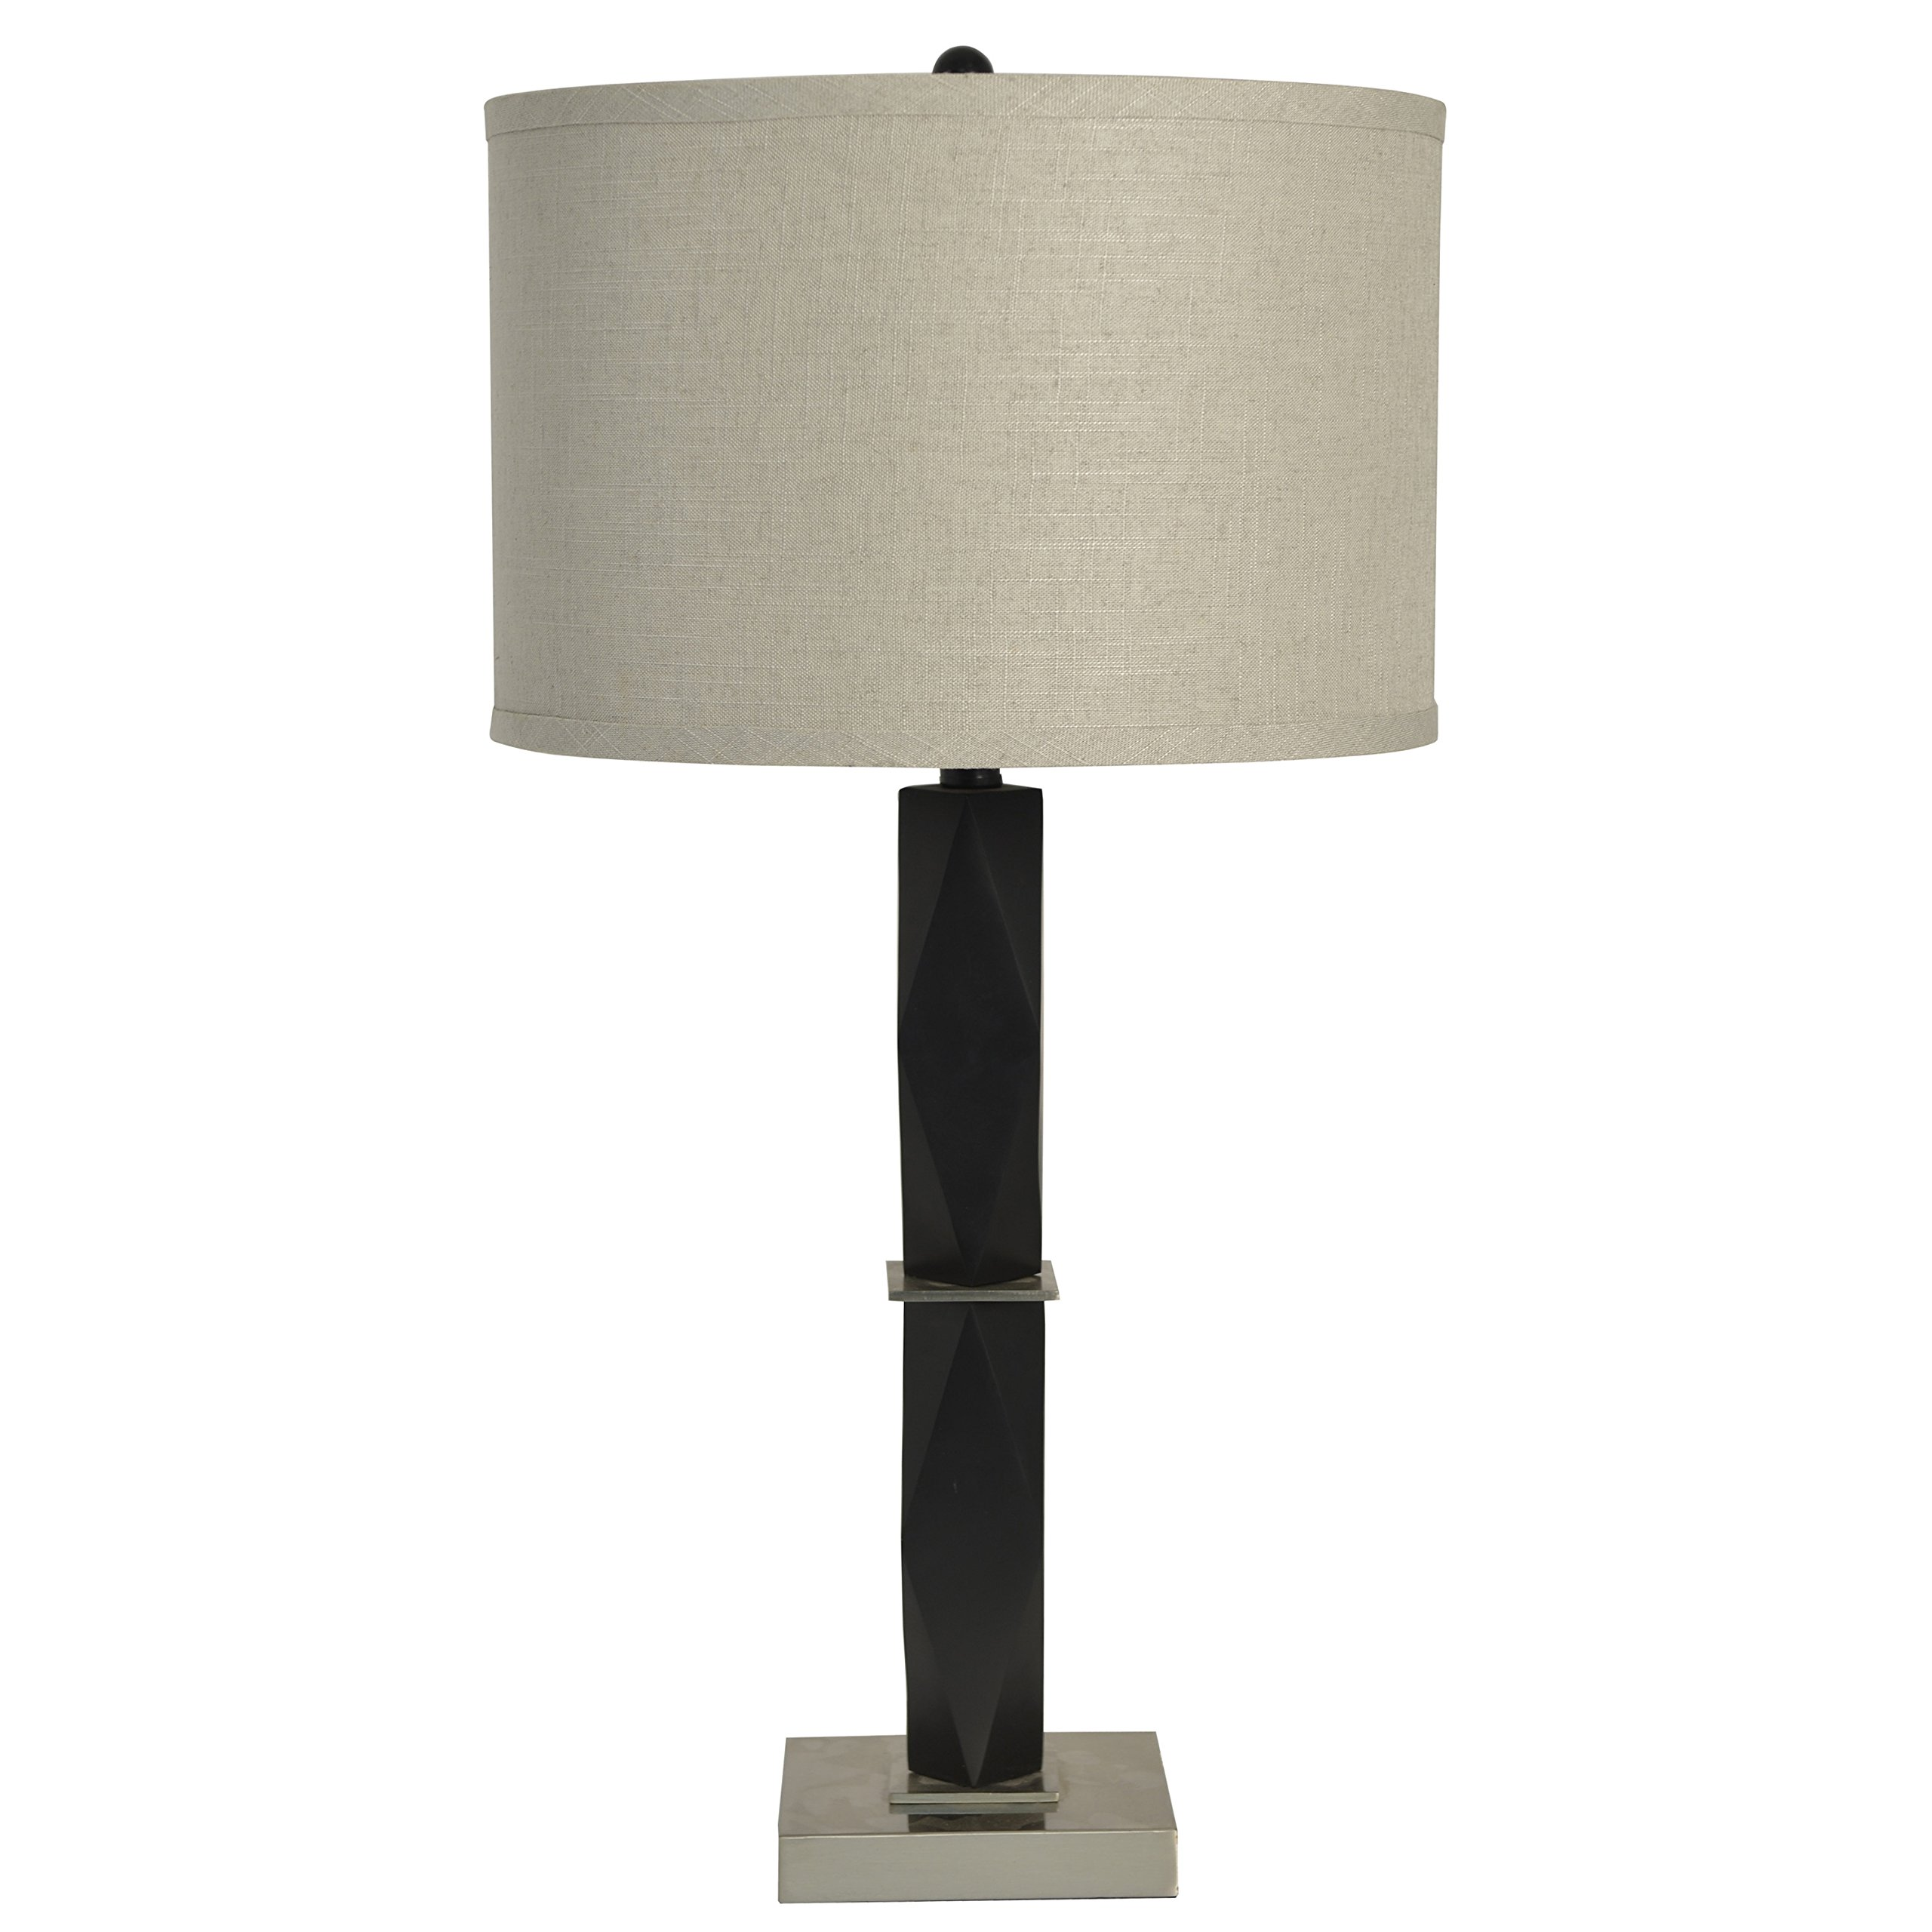 Décor Therapy TL14105 Square Matte Black Table Lampmatte Black & Brushed Steel